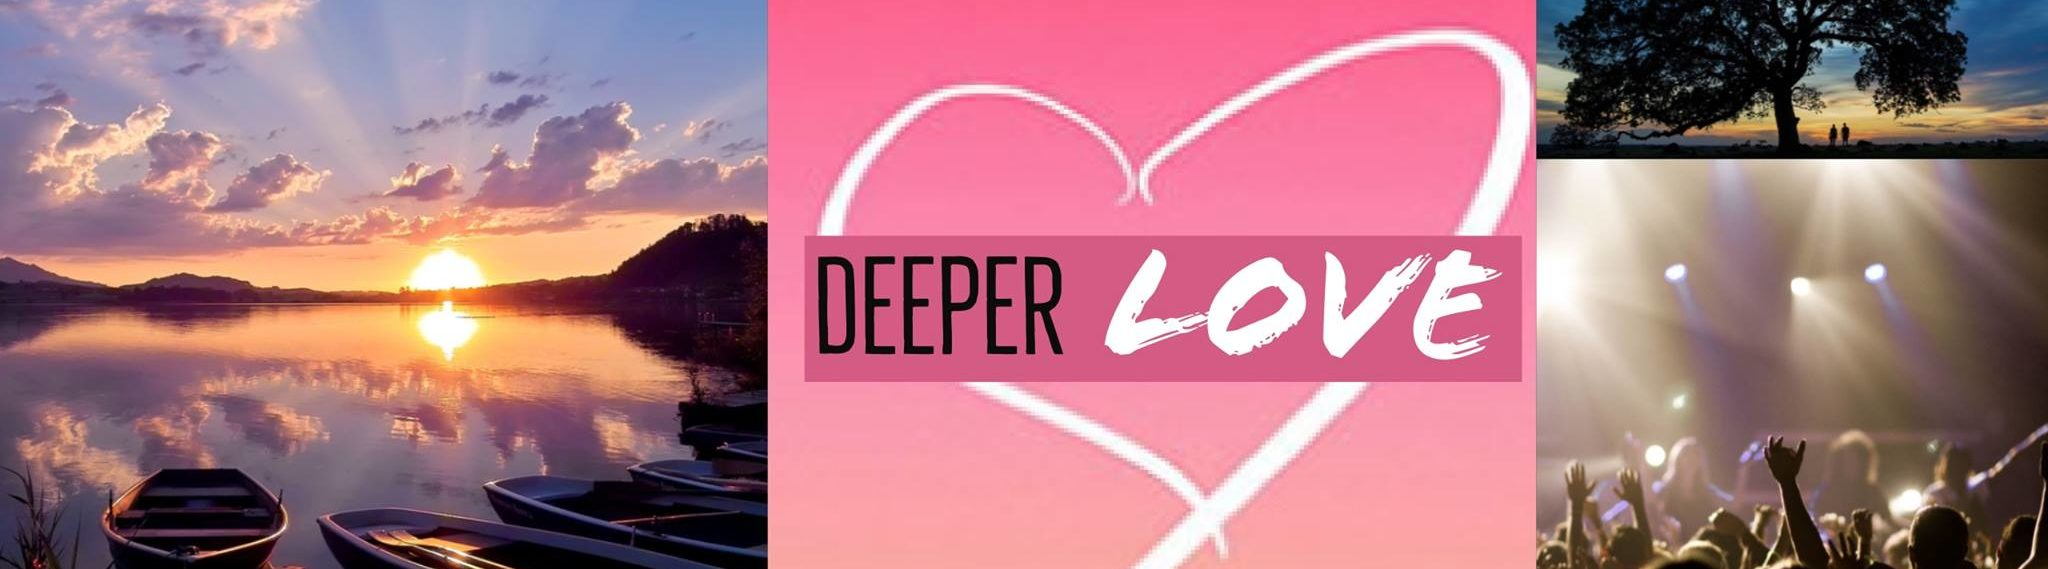 Deeper Love International